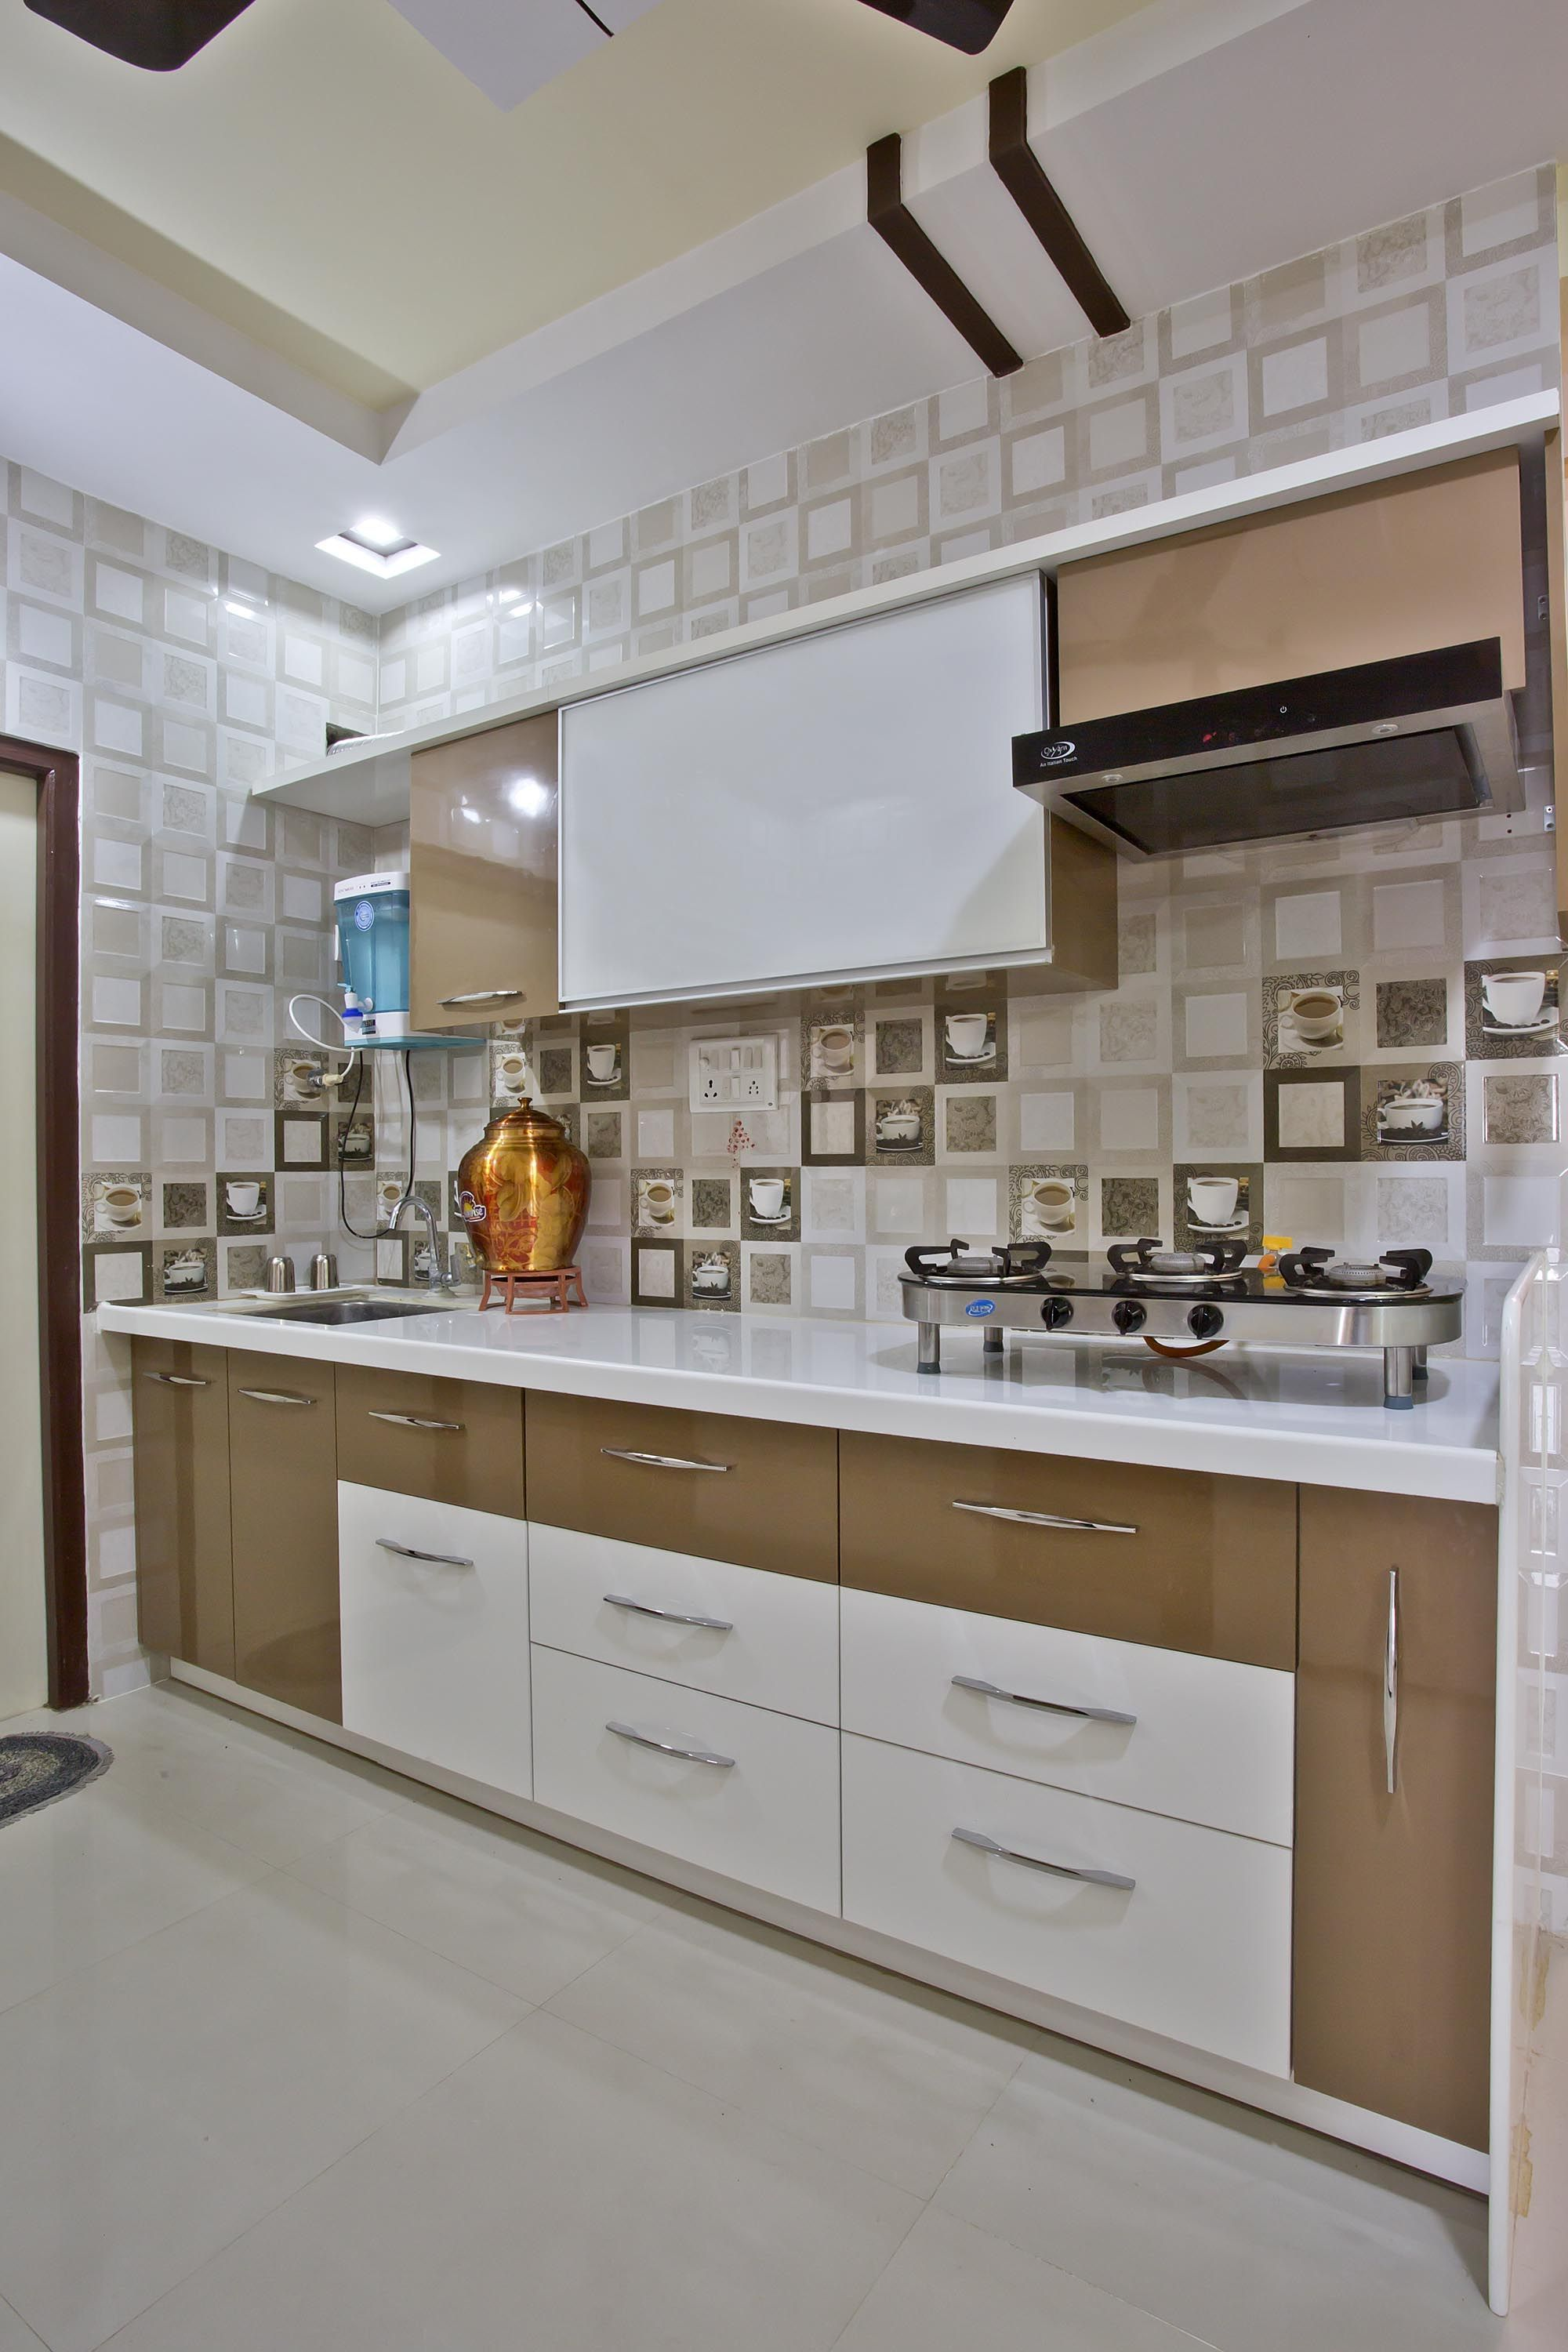 Modular Kitchen Is The Latest Kitchen Set Model That Is Mostly Used Currently The Modular Ki White Kitchen Remodeling Kitchen Modular Kitchen Furniture Design